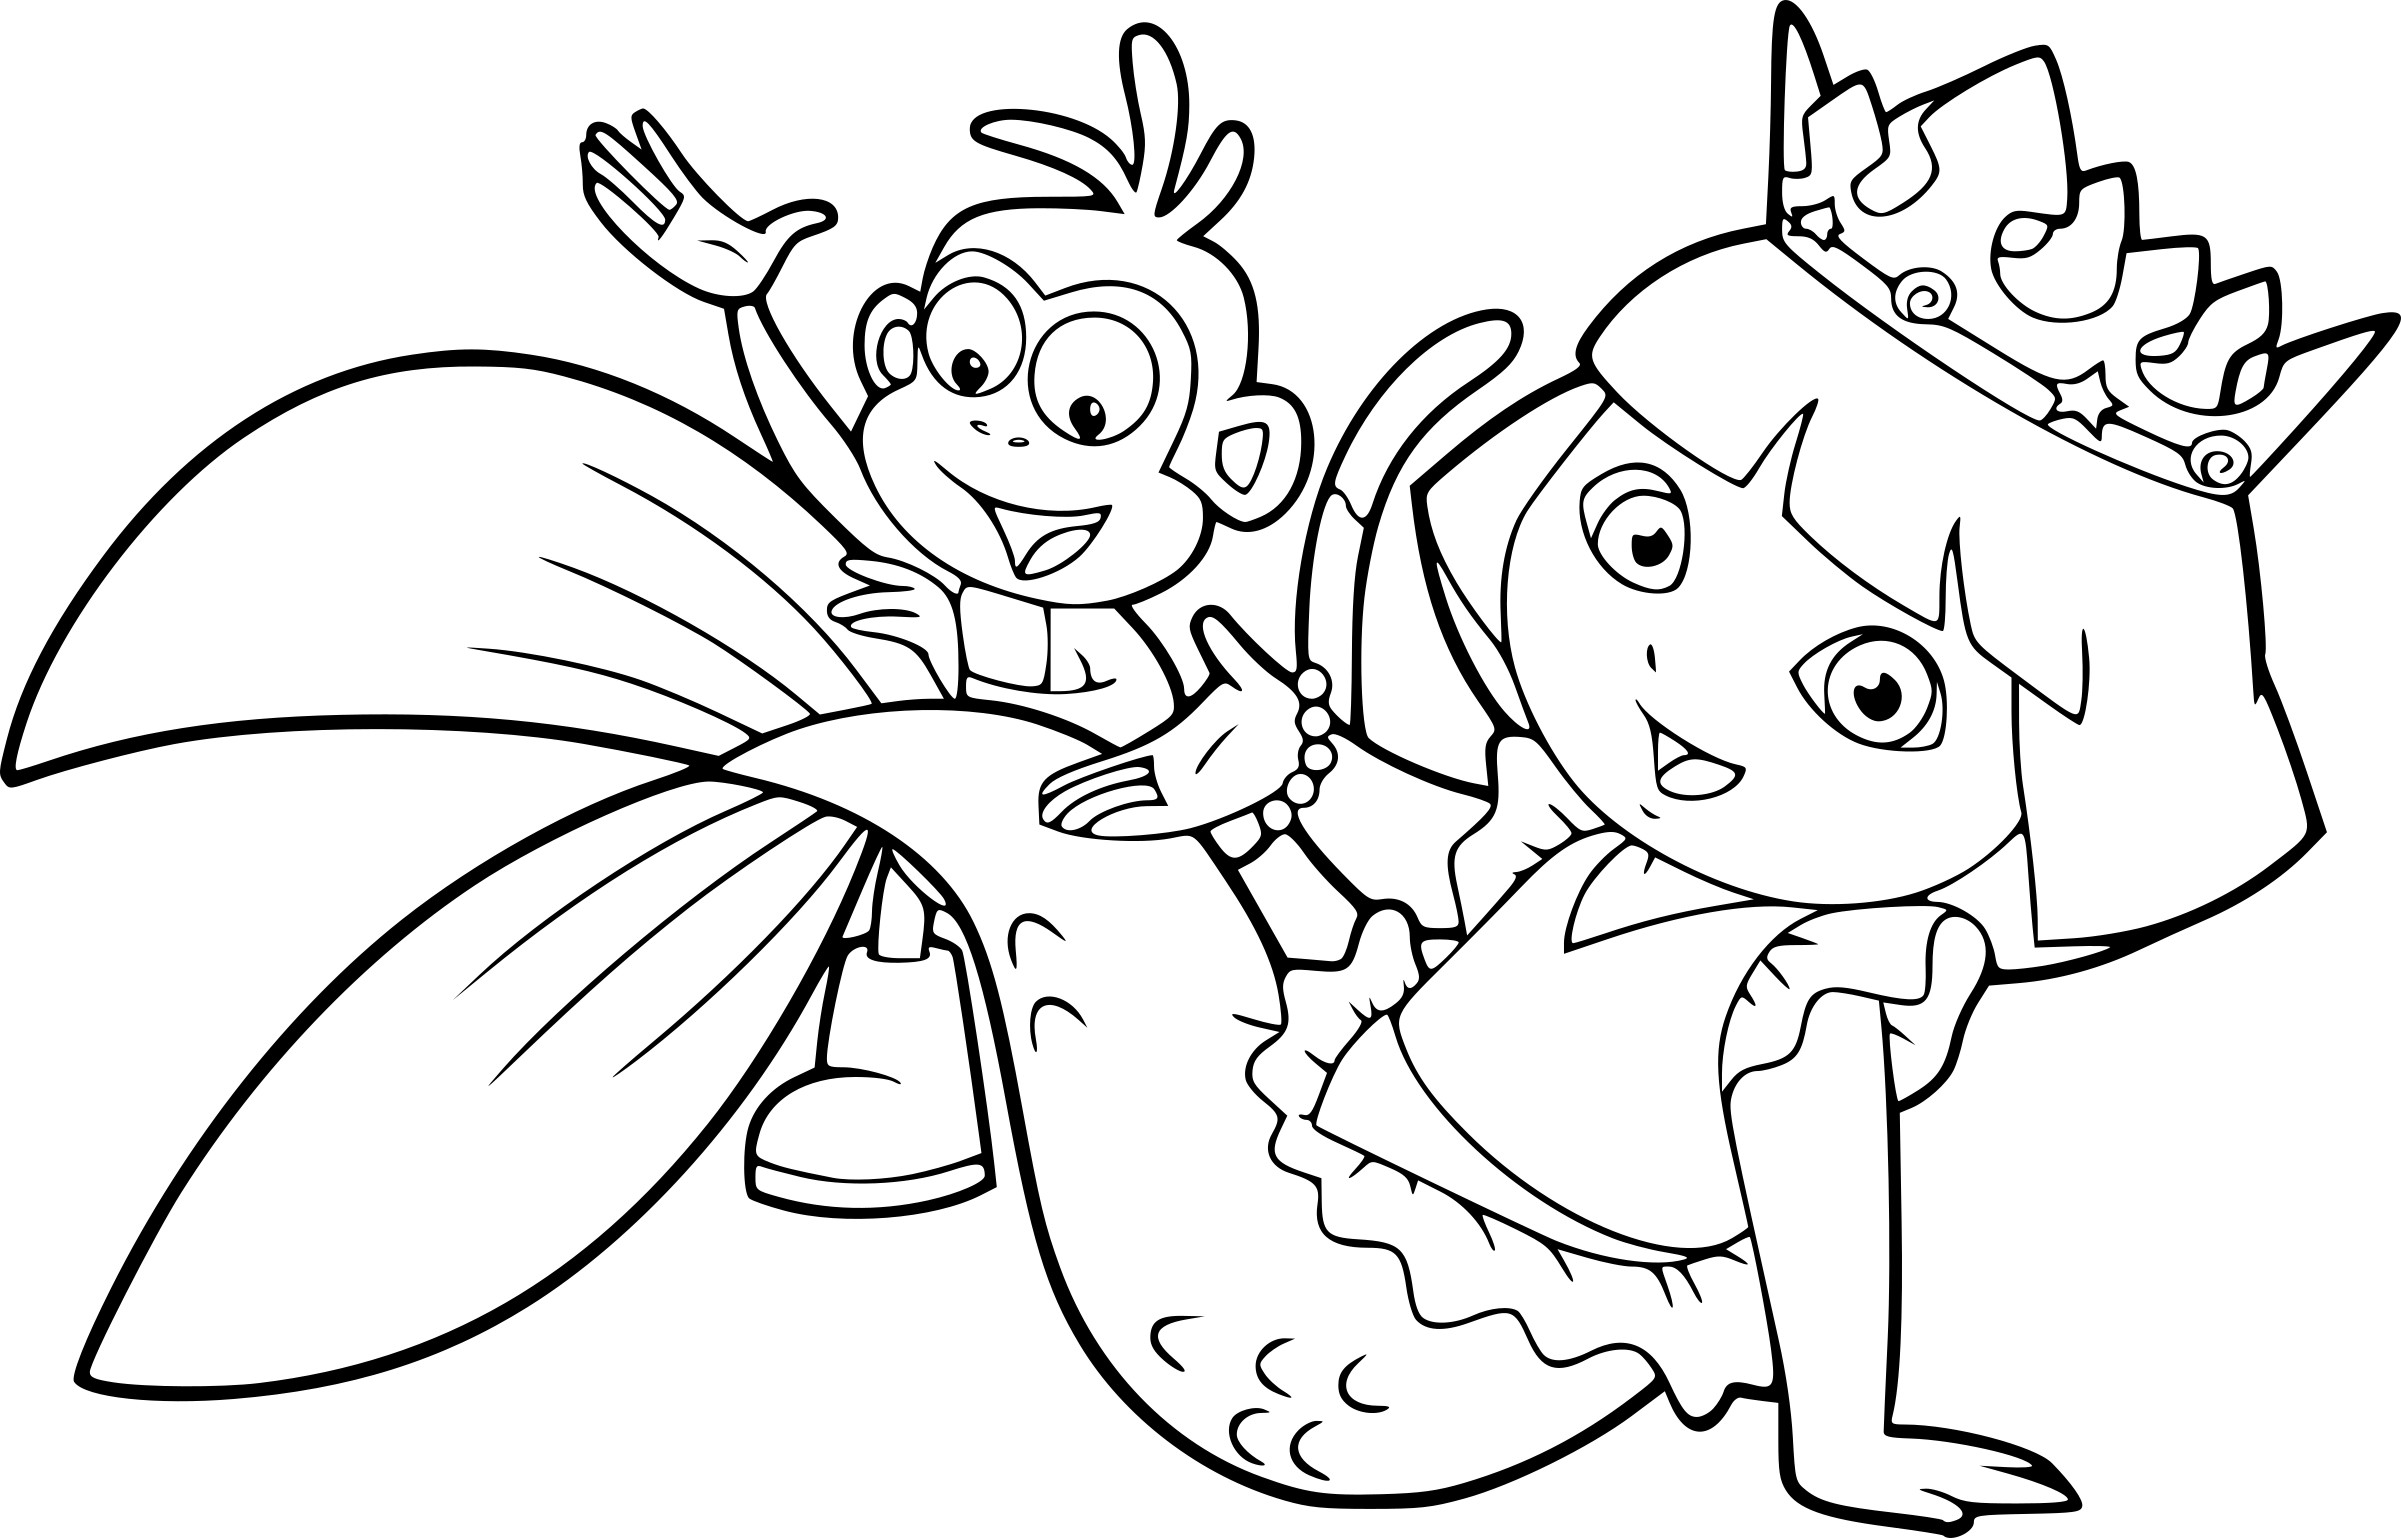 Dora Sirene on animal coloring pages